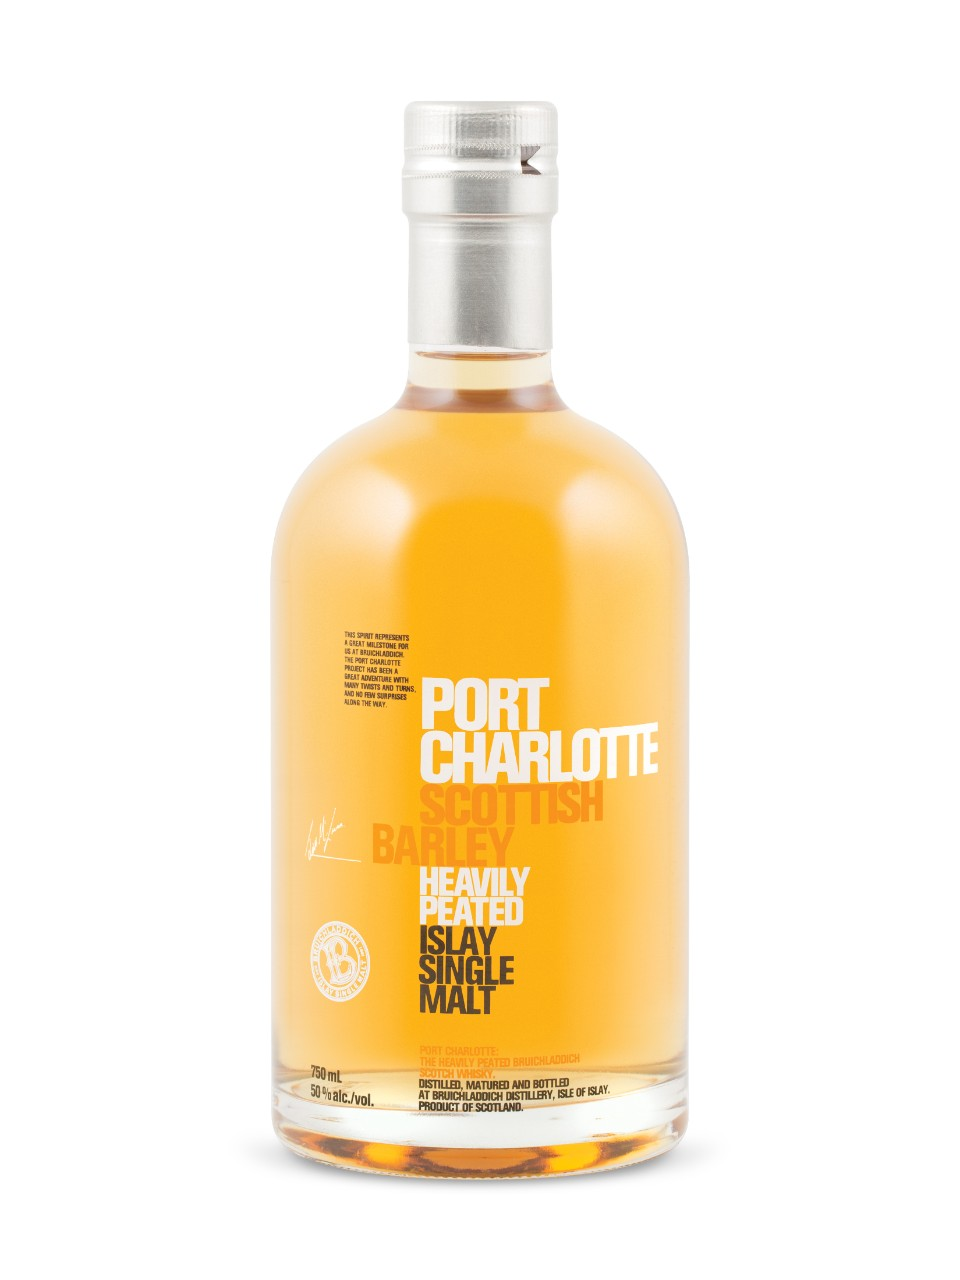 Image for Port Charlotte Scottish Barley Heavily Peated Islay Single Malt Scotch Whisky from LCBO